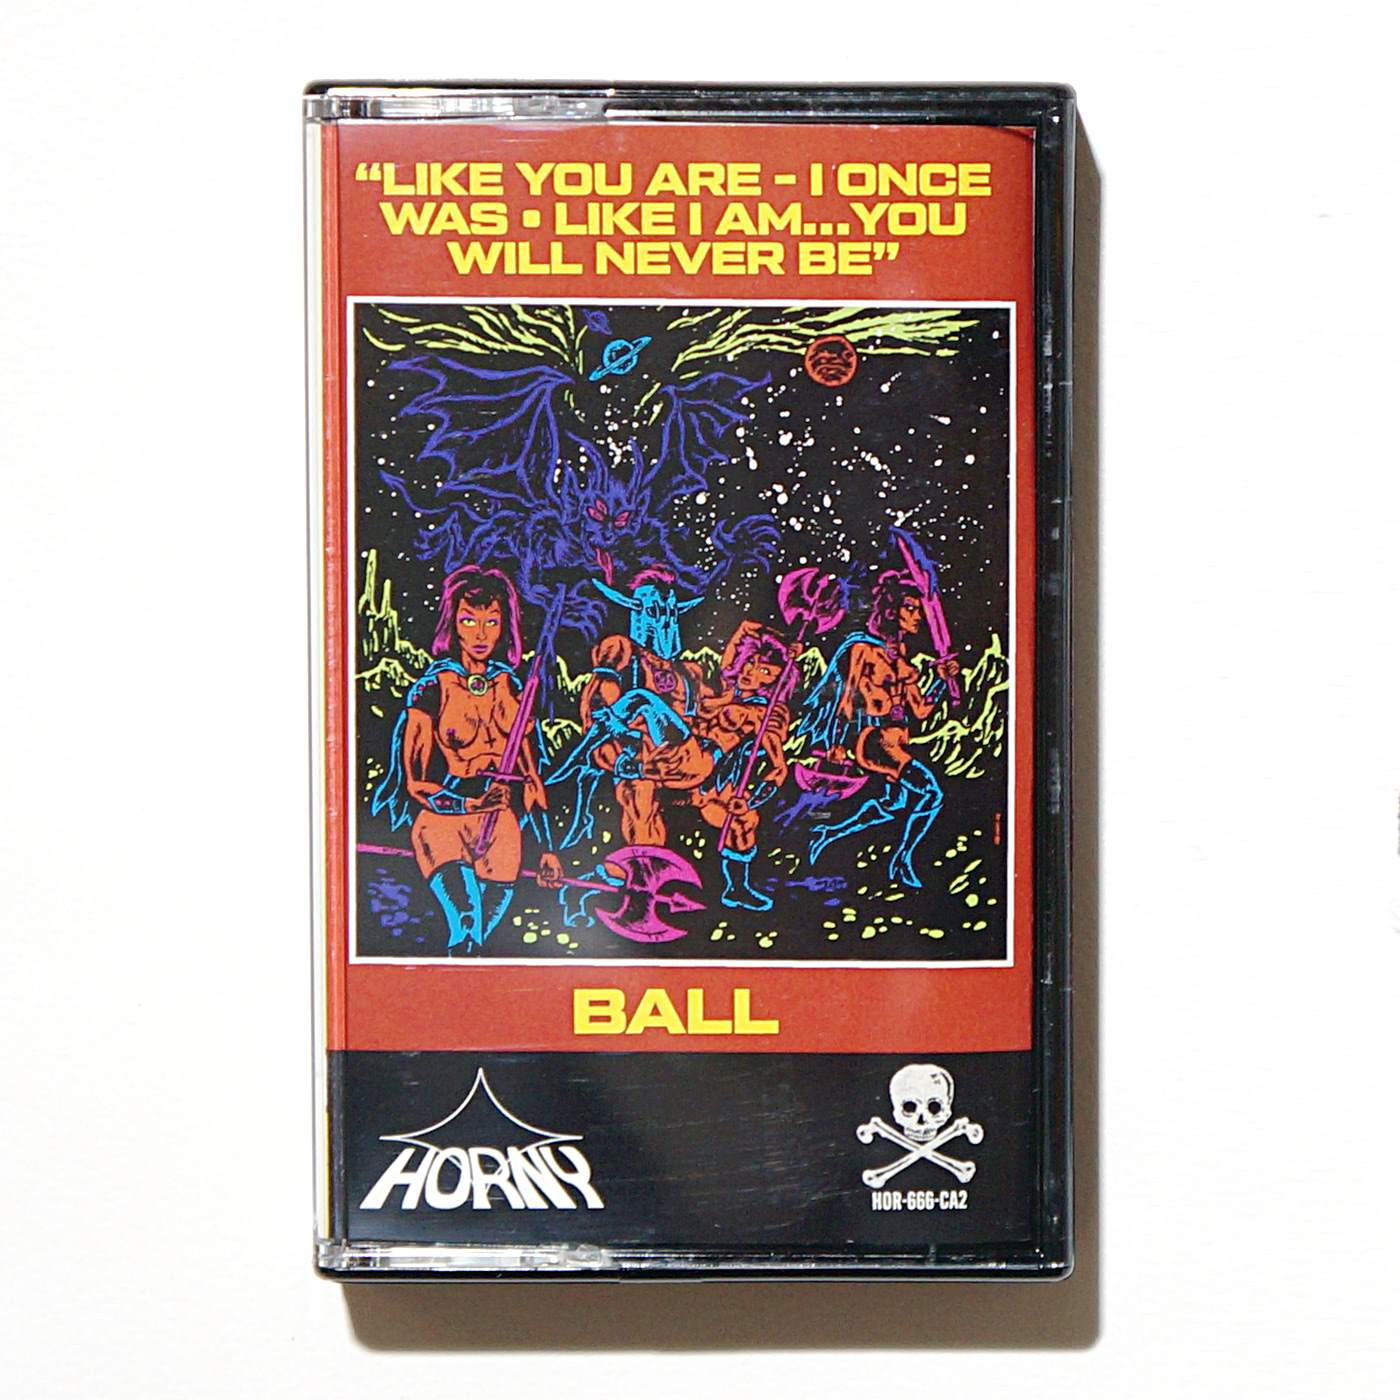 BALL- Like You Are... I Once Was...Like I Am-You Will Never Be (カセット+パッチ)限定版